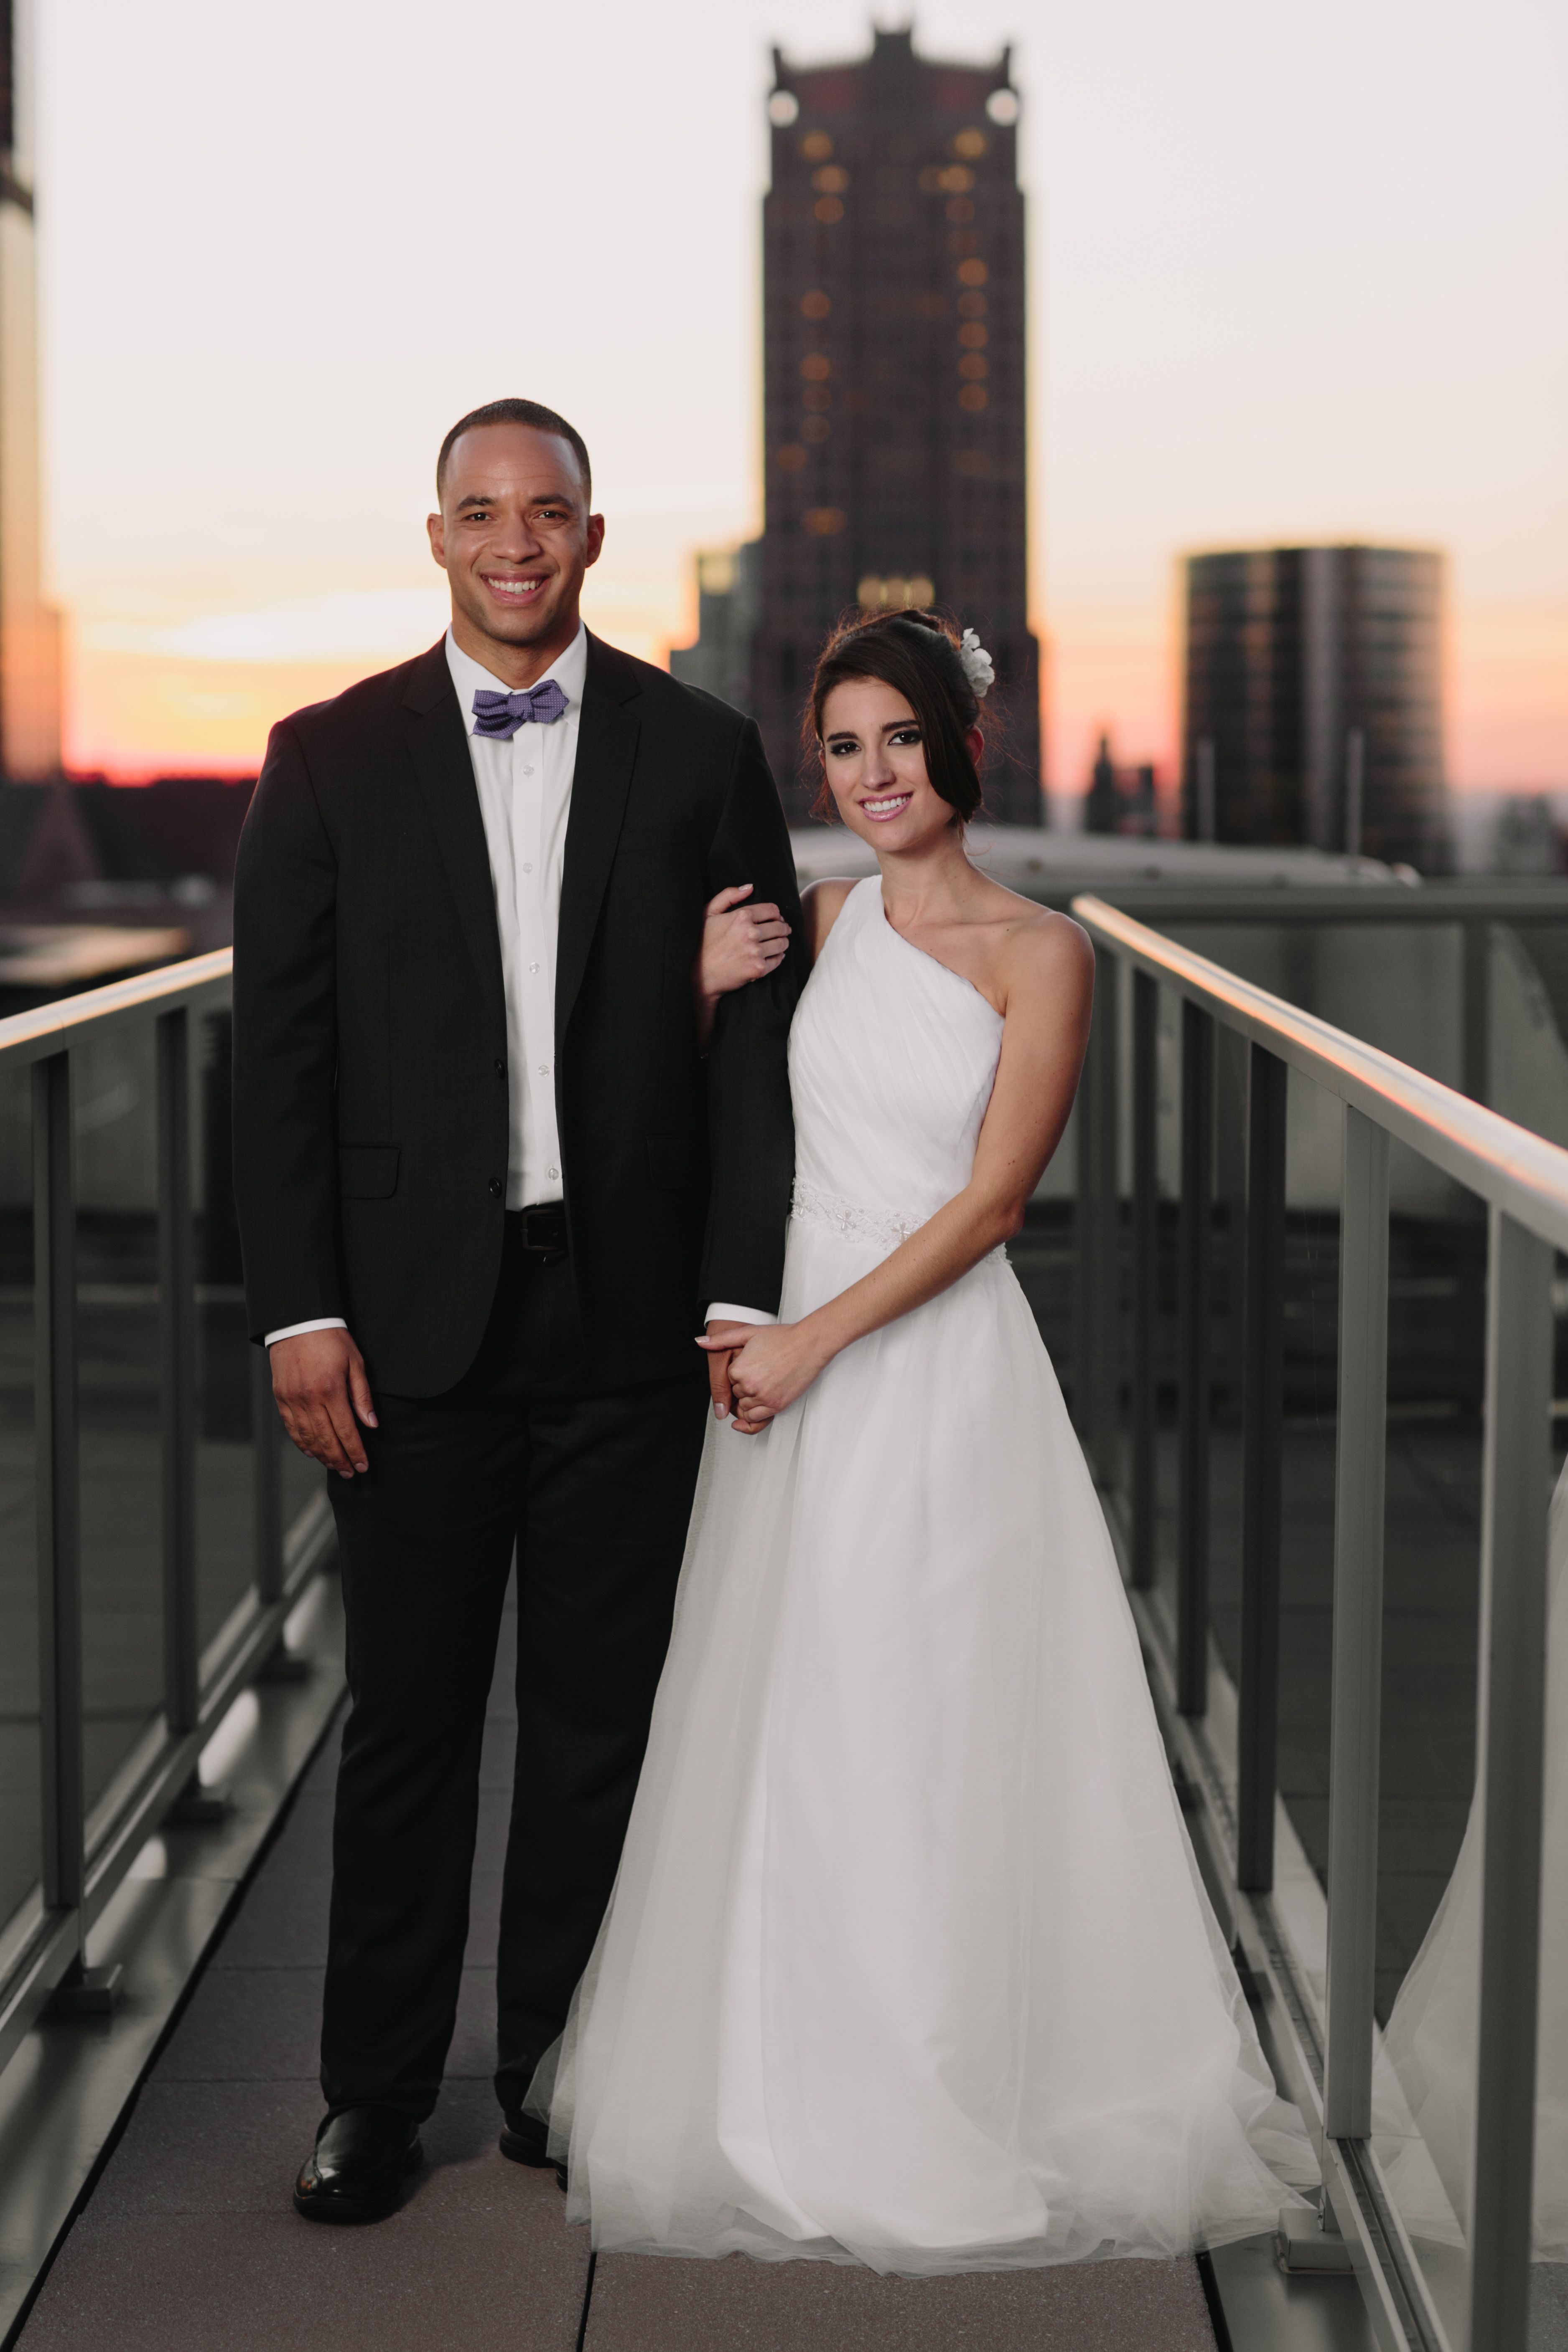 Chicago wedding dress shops  Chicago Skyline Rooftop Wedding  Dresses by MaCherie Bridal